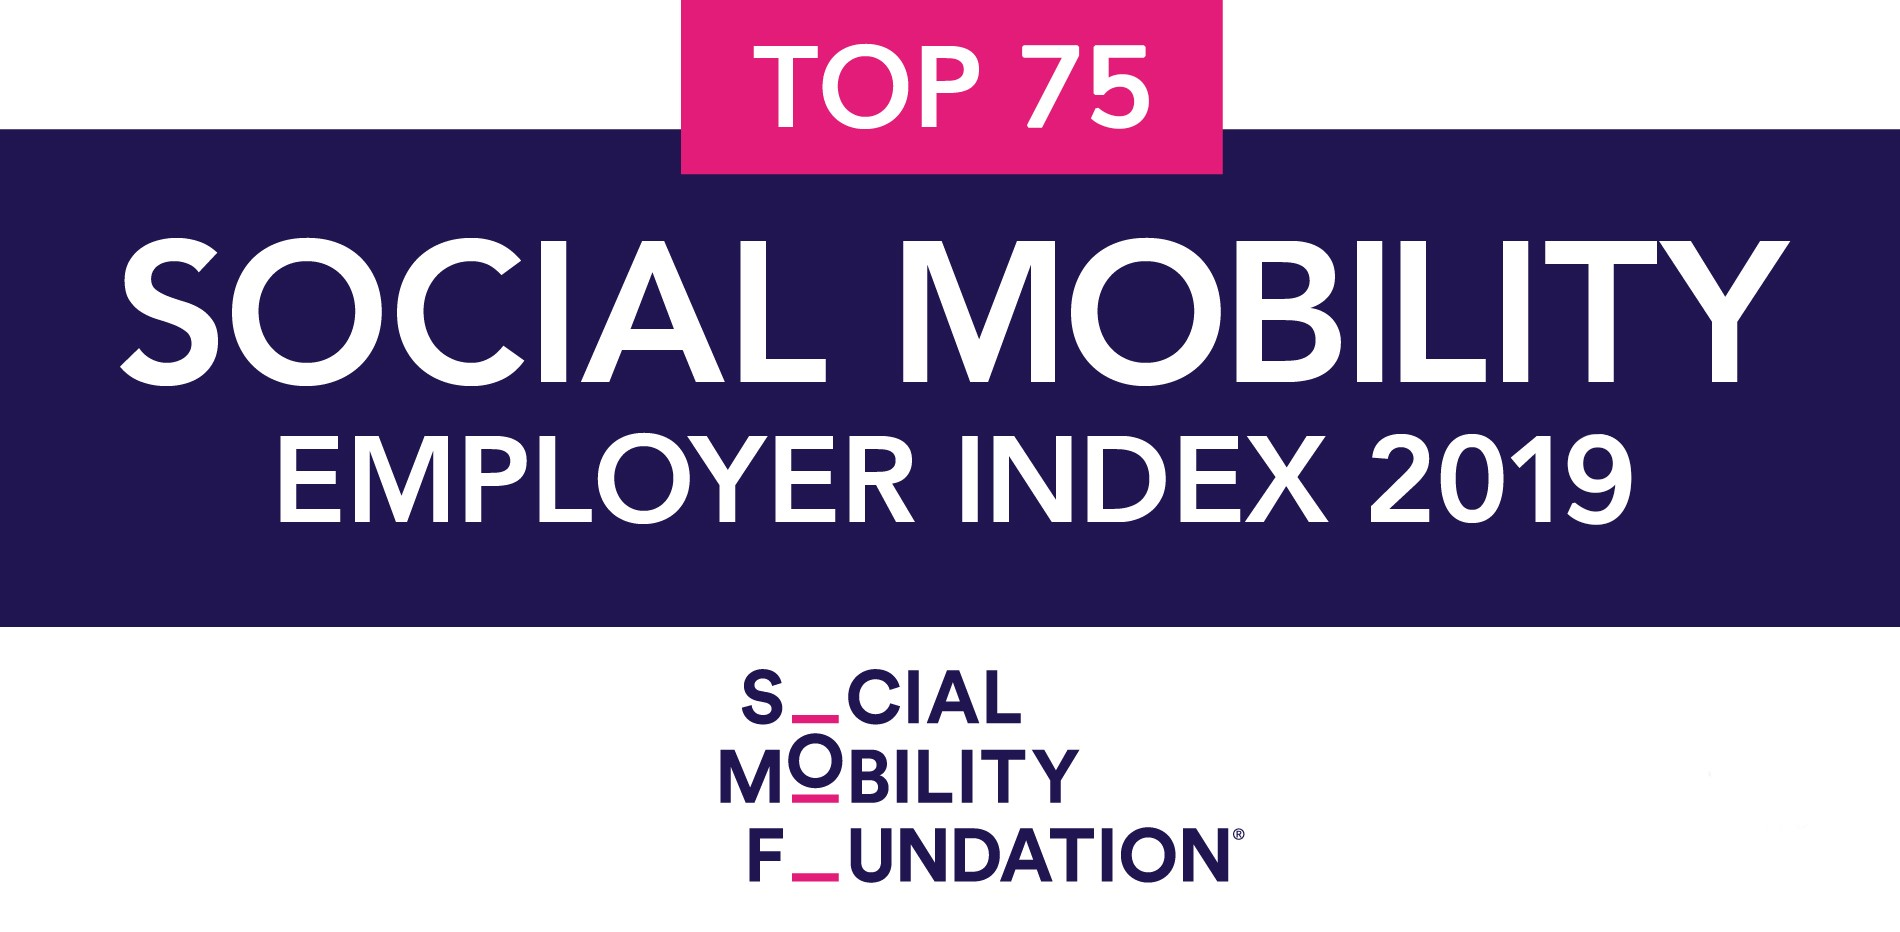 Enterprise ranked as a top Social Mobility Employer for third year running